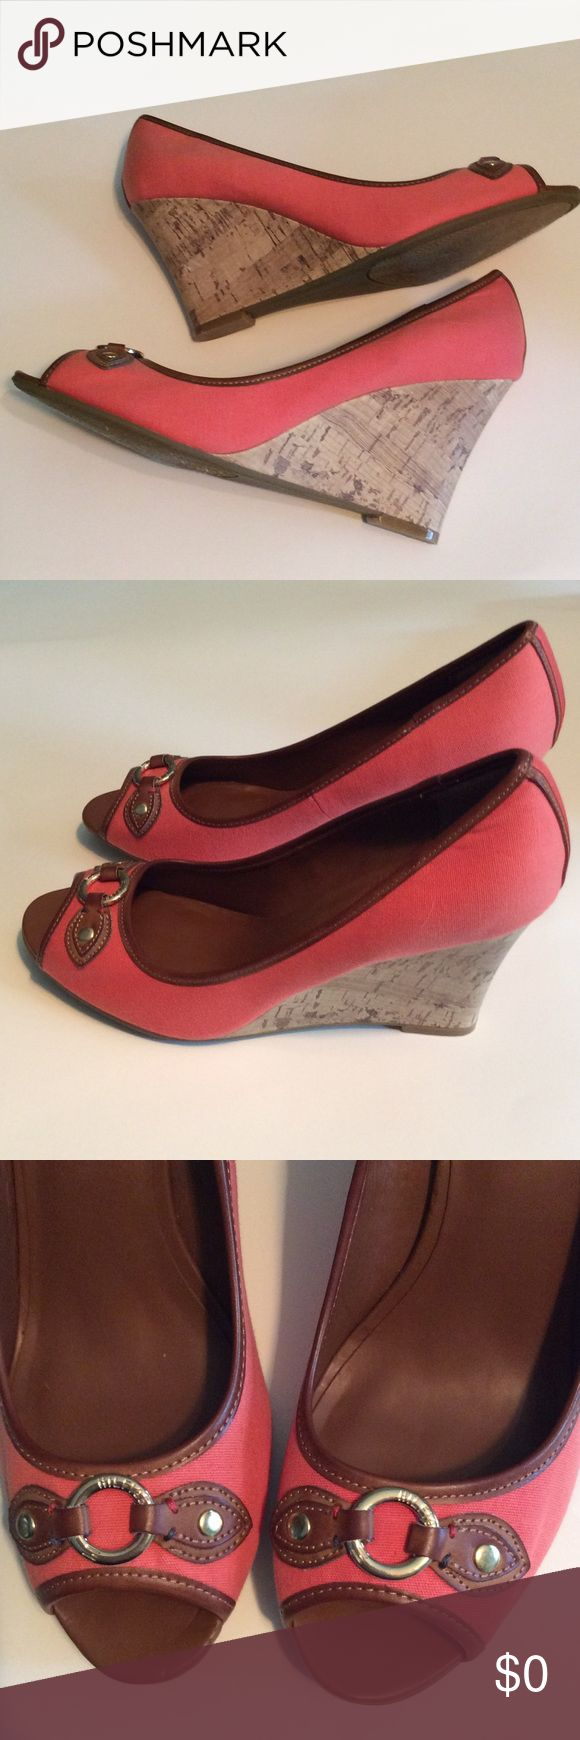 Tommy Hilfiger ladies shoes Tommy Hilfiger ladies shoes....sz: 10 med....very pretty....Color is kind of a salmon and a brown....Excellent condition except for inside the shoe (Picture number 5) where sale sticker was placed....nothing a shoe pad/insert can't fix.... Tommy Hilfiger Shoes Wedges